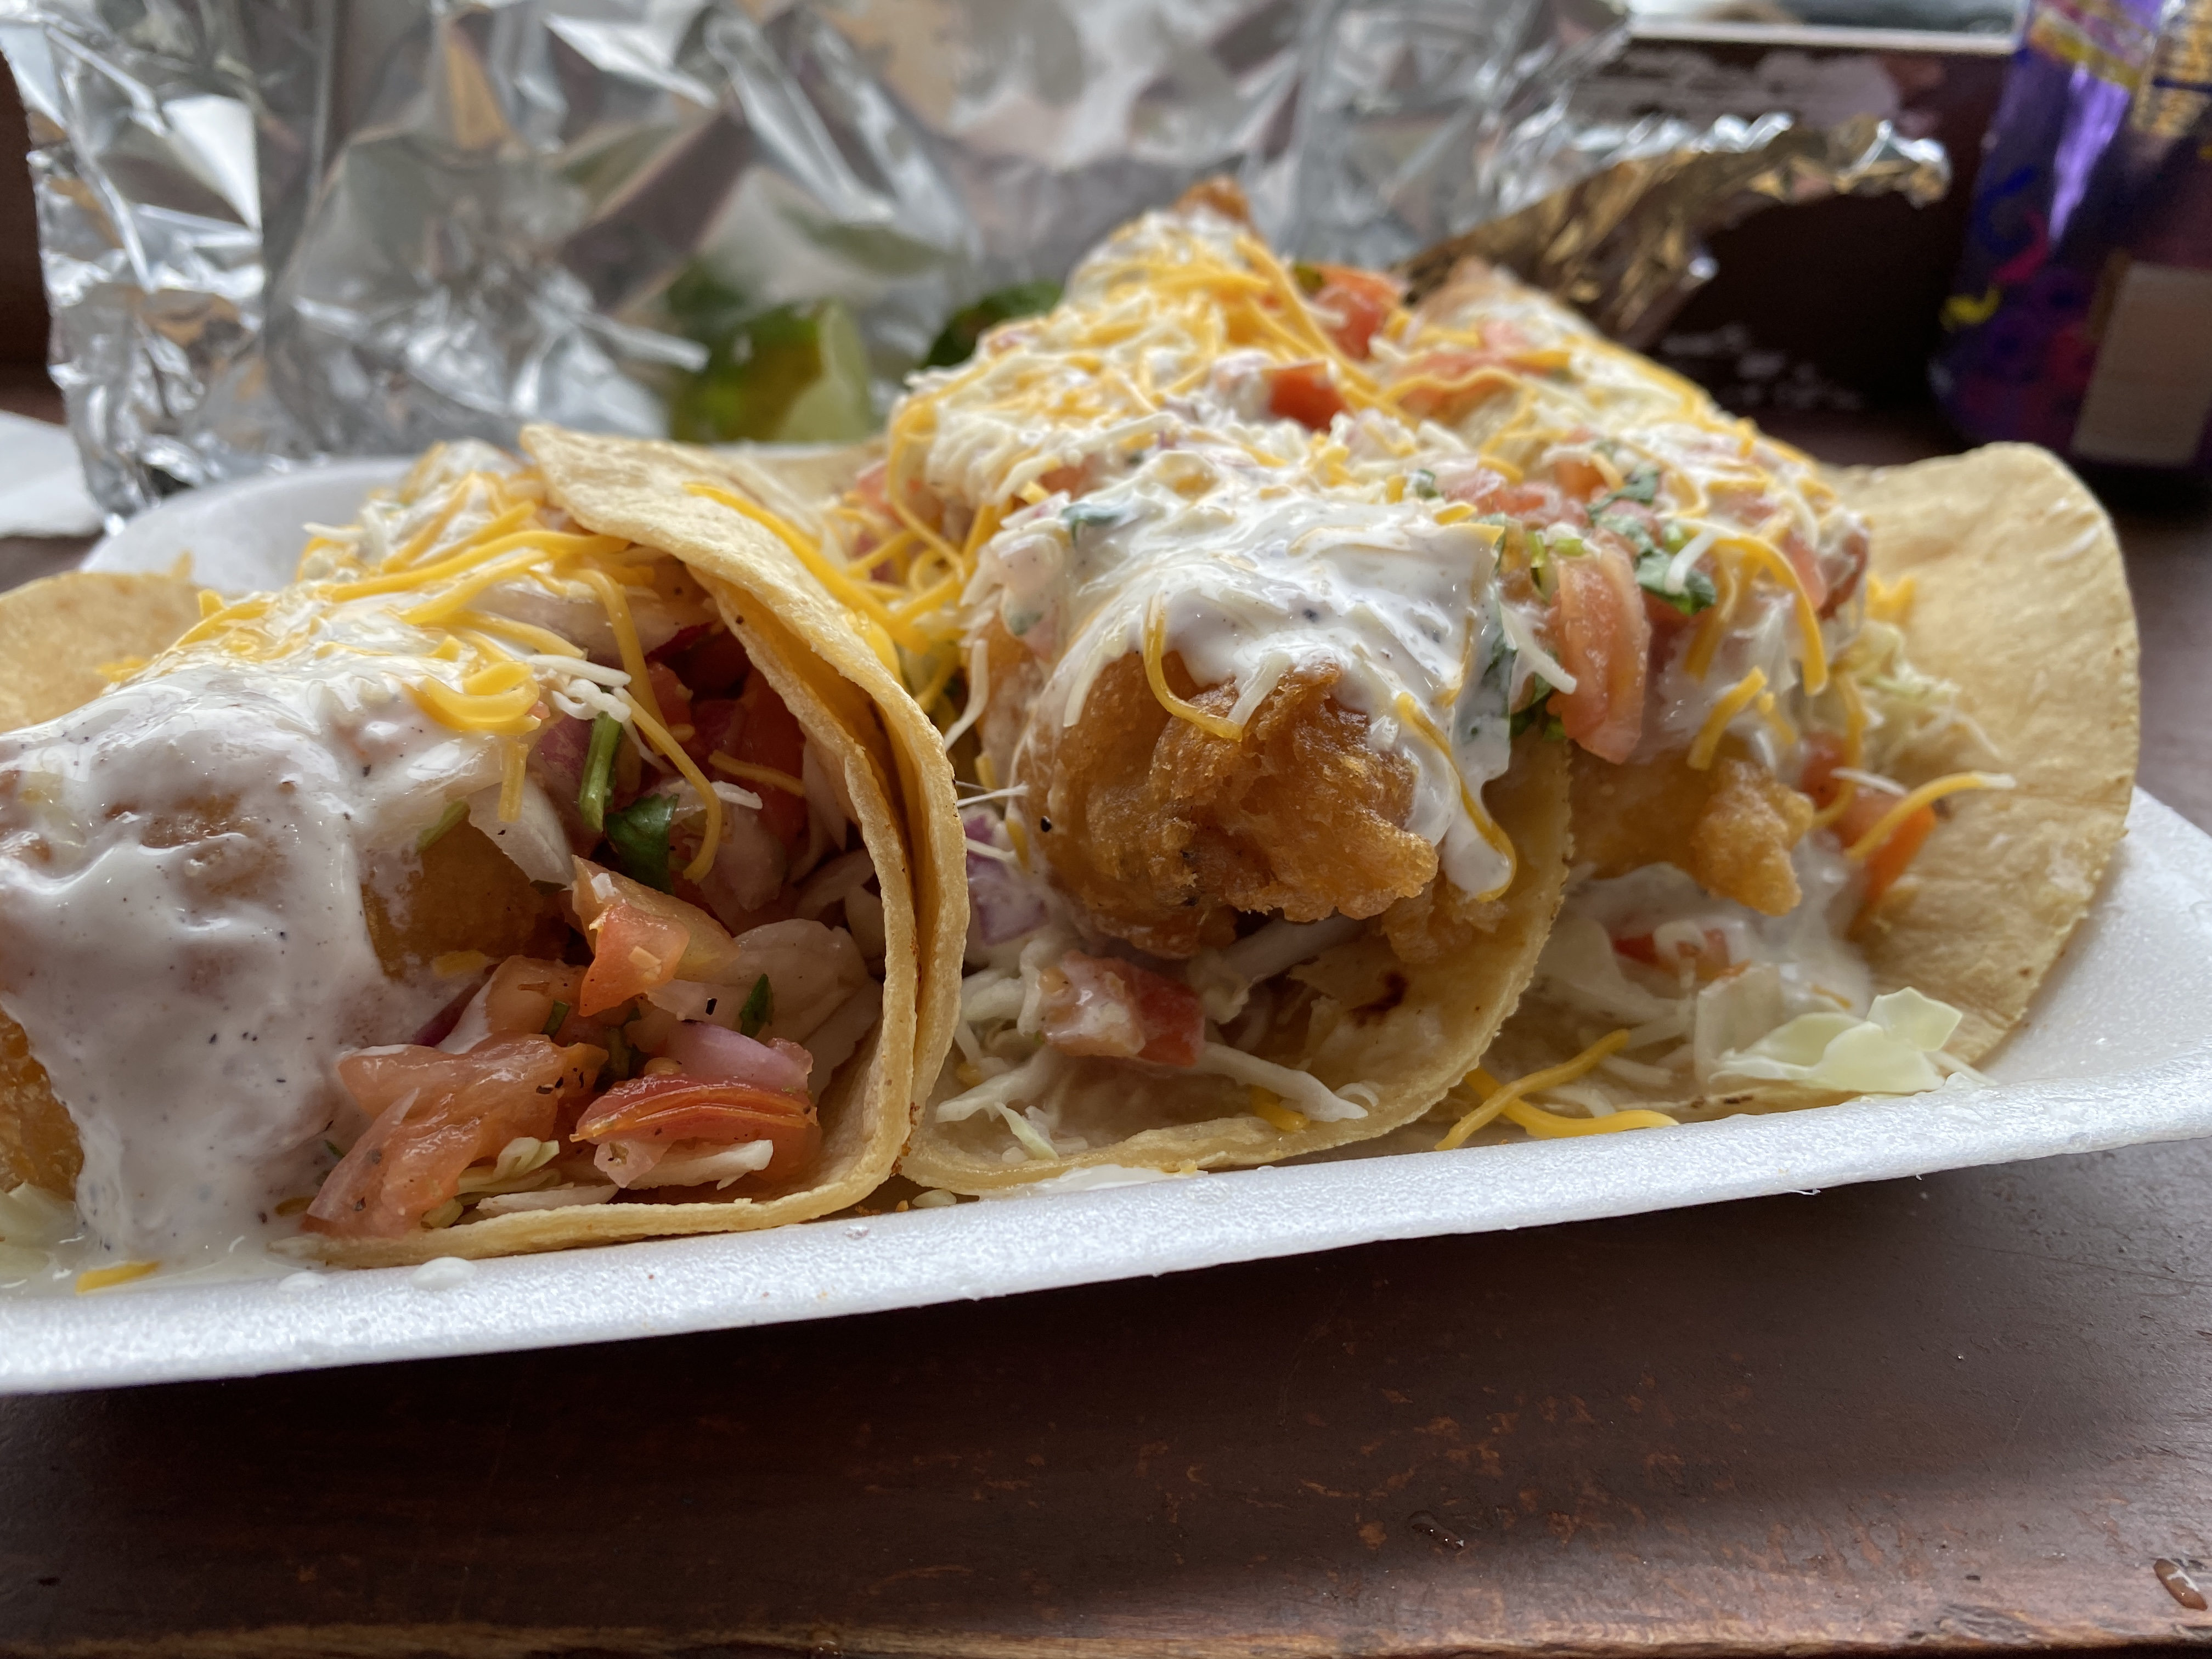 The best fish tacos can be found at a liquor store in OB.